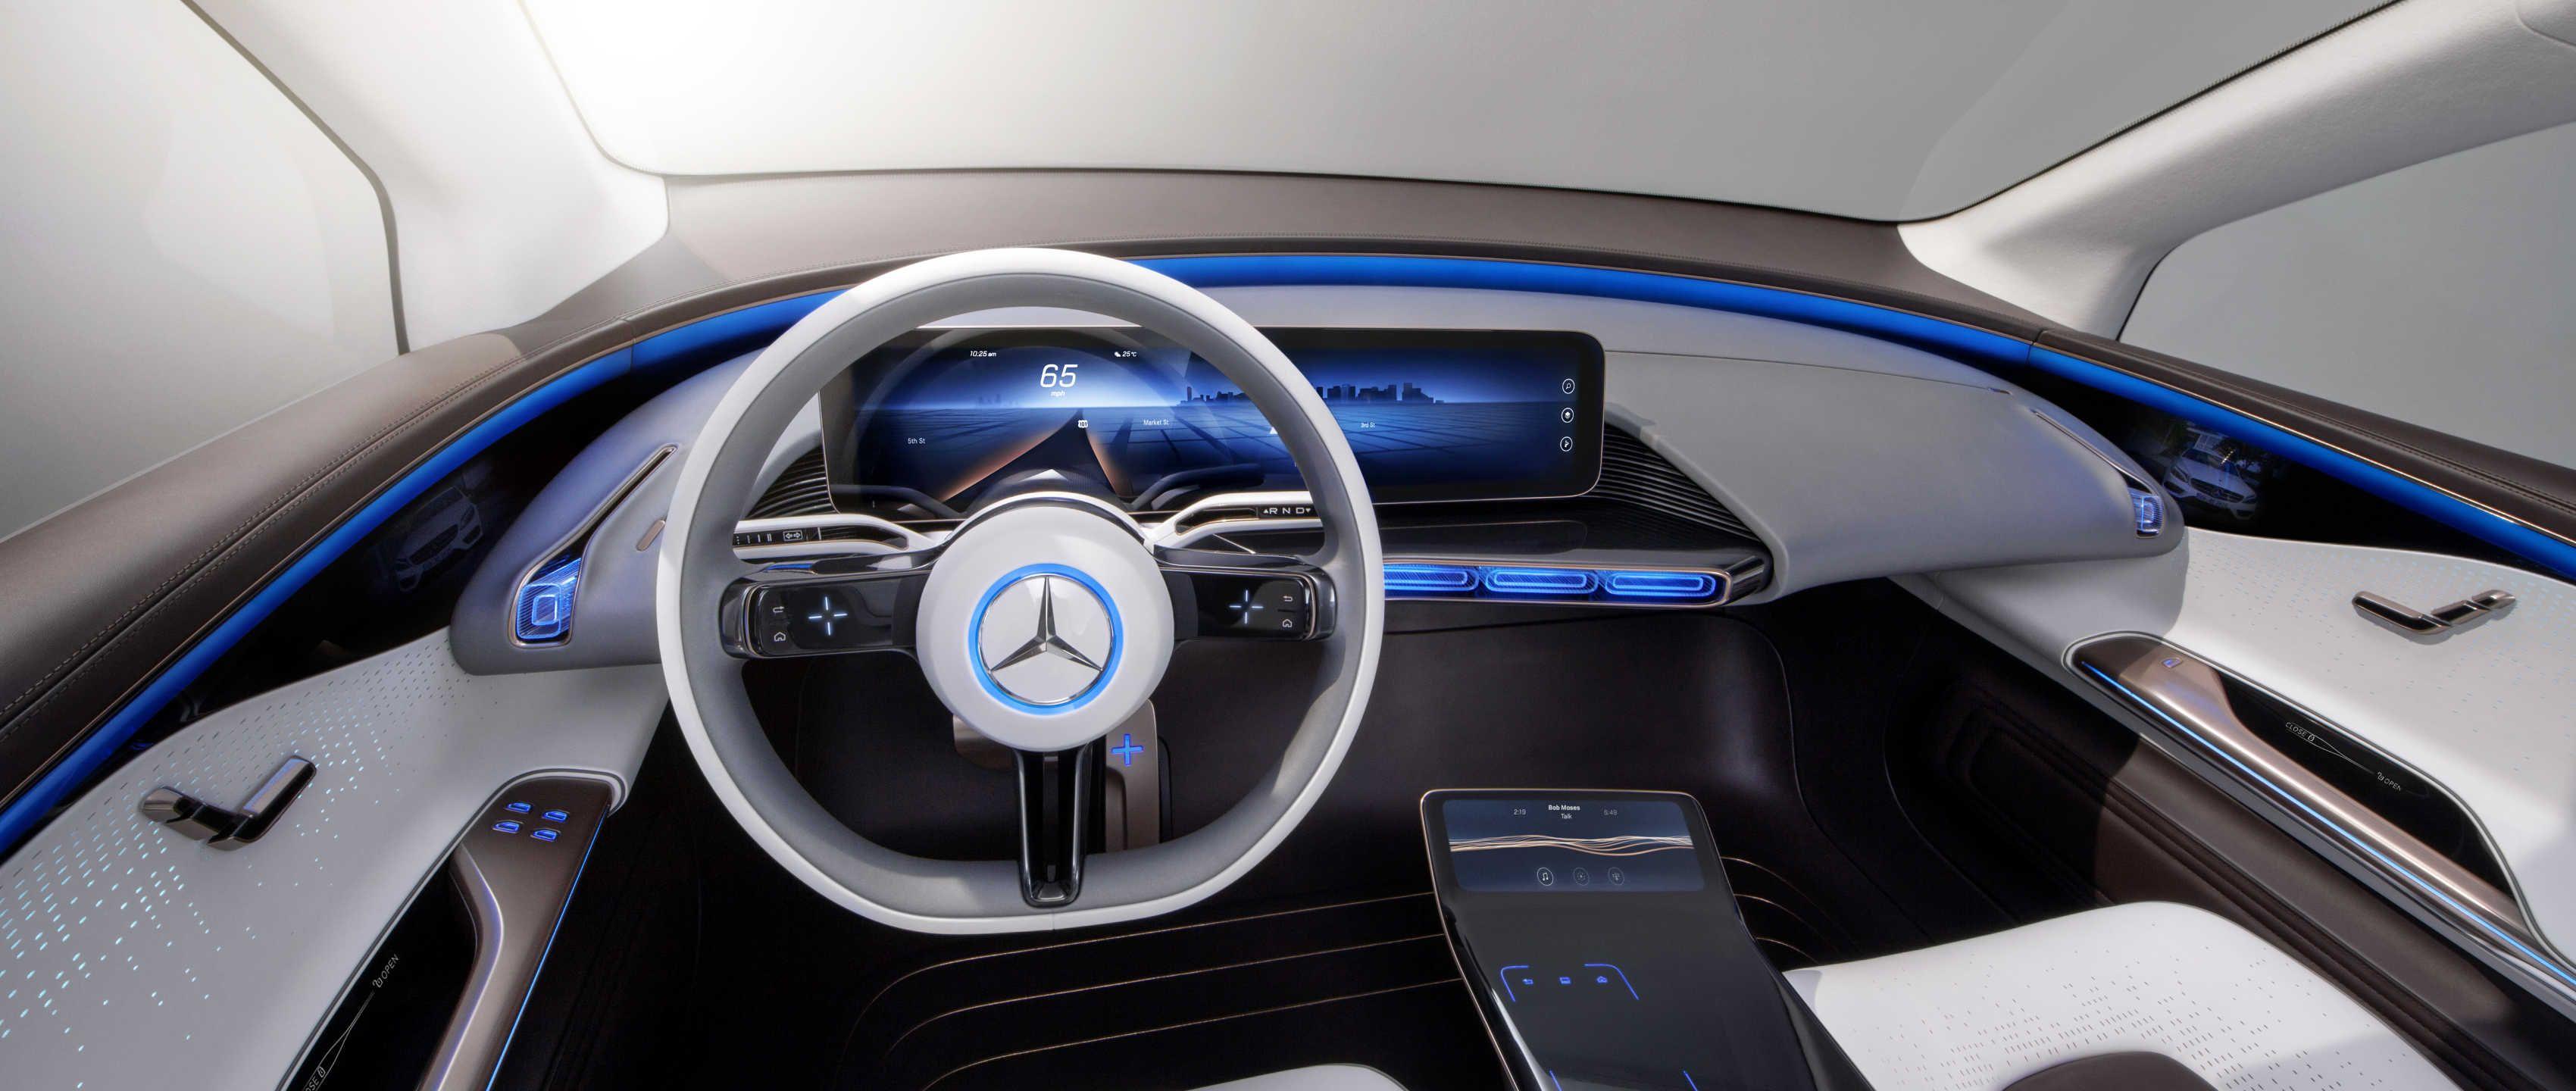 With Concept Eq Mercedes Benz Shows How Electric Cars Can Soon